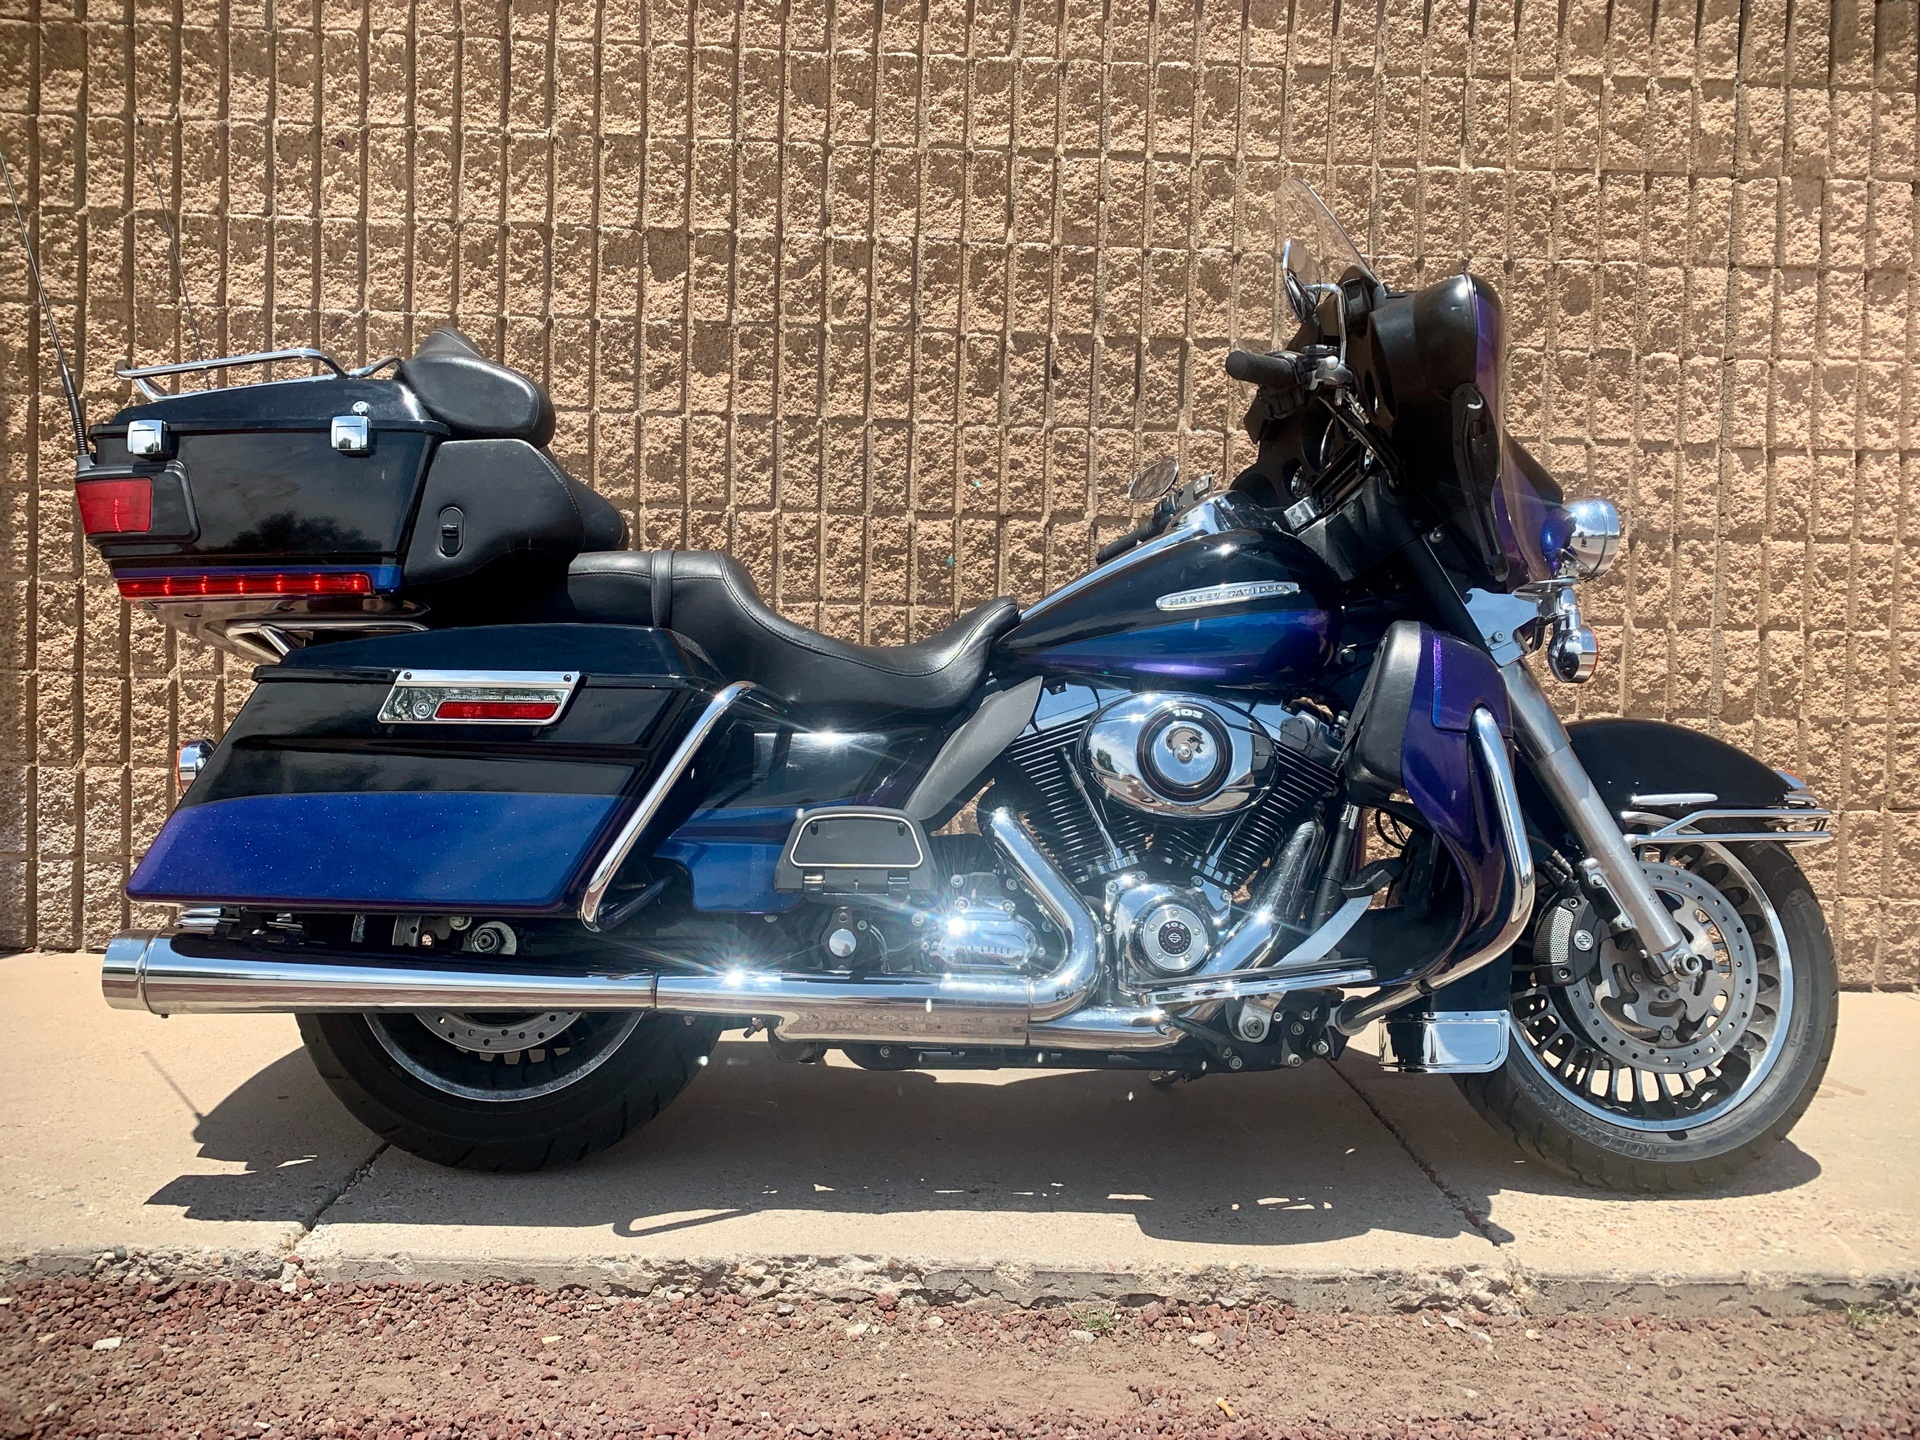 2010 Harley-Davidson Electra Glide® Ultra Limited in Albuquerque, New Mexico - Photo 1